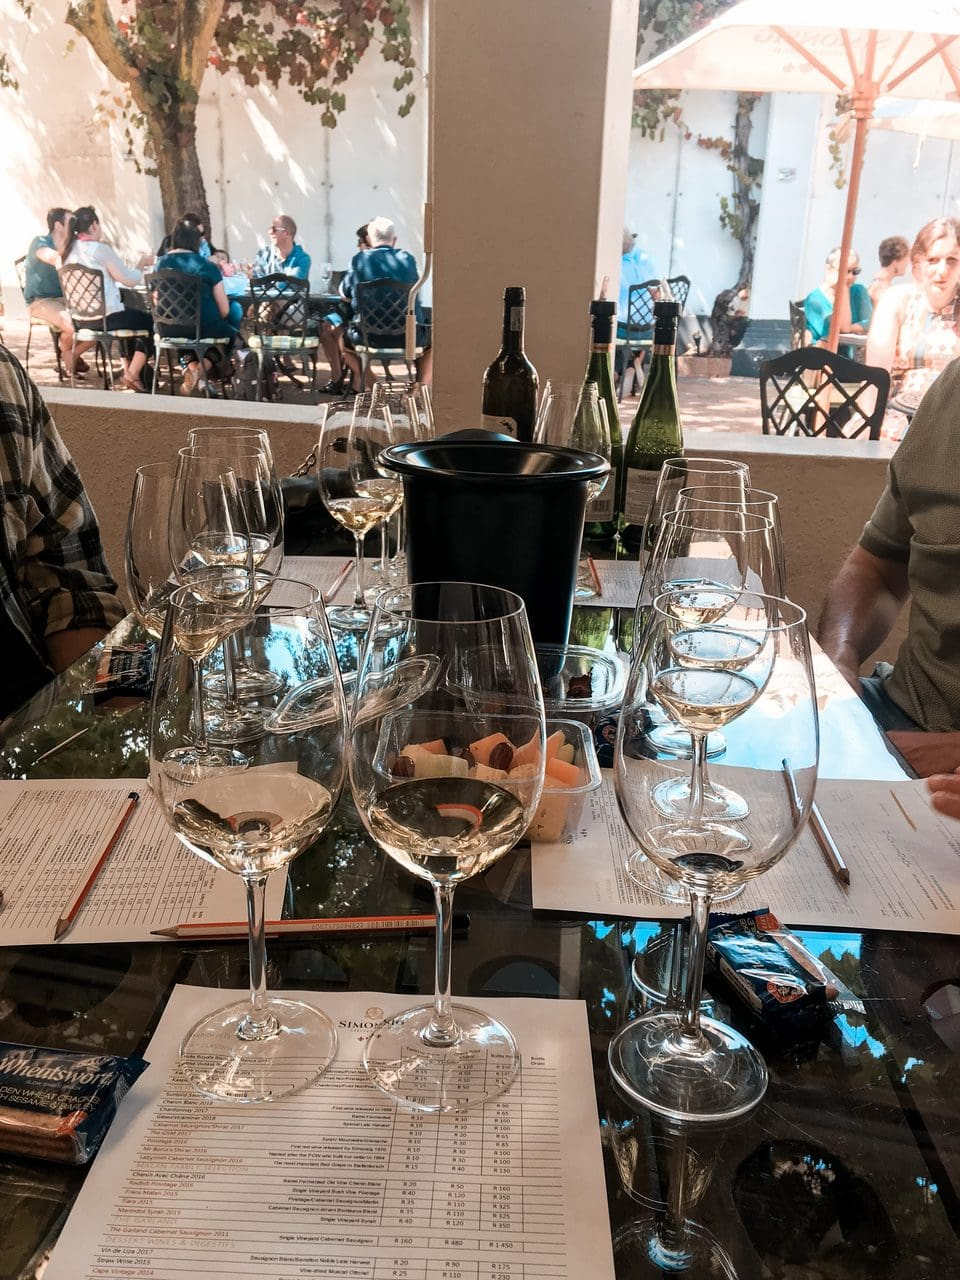 People drinking wine at a wine estate in stellenbosch south africa.